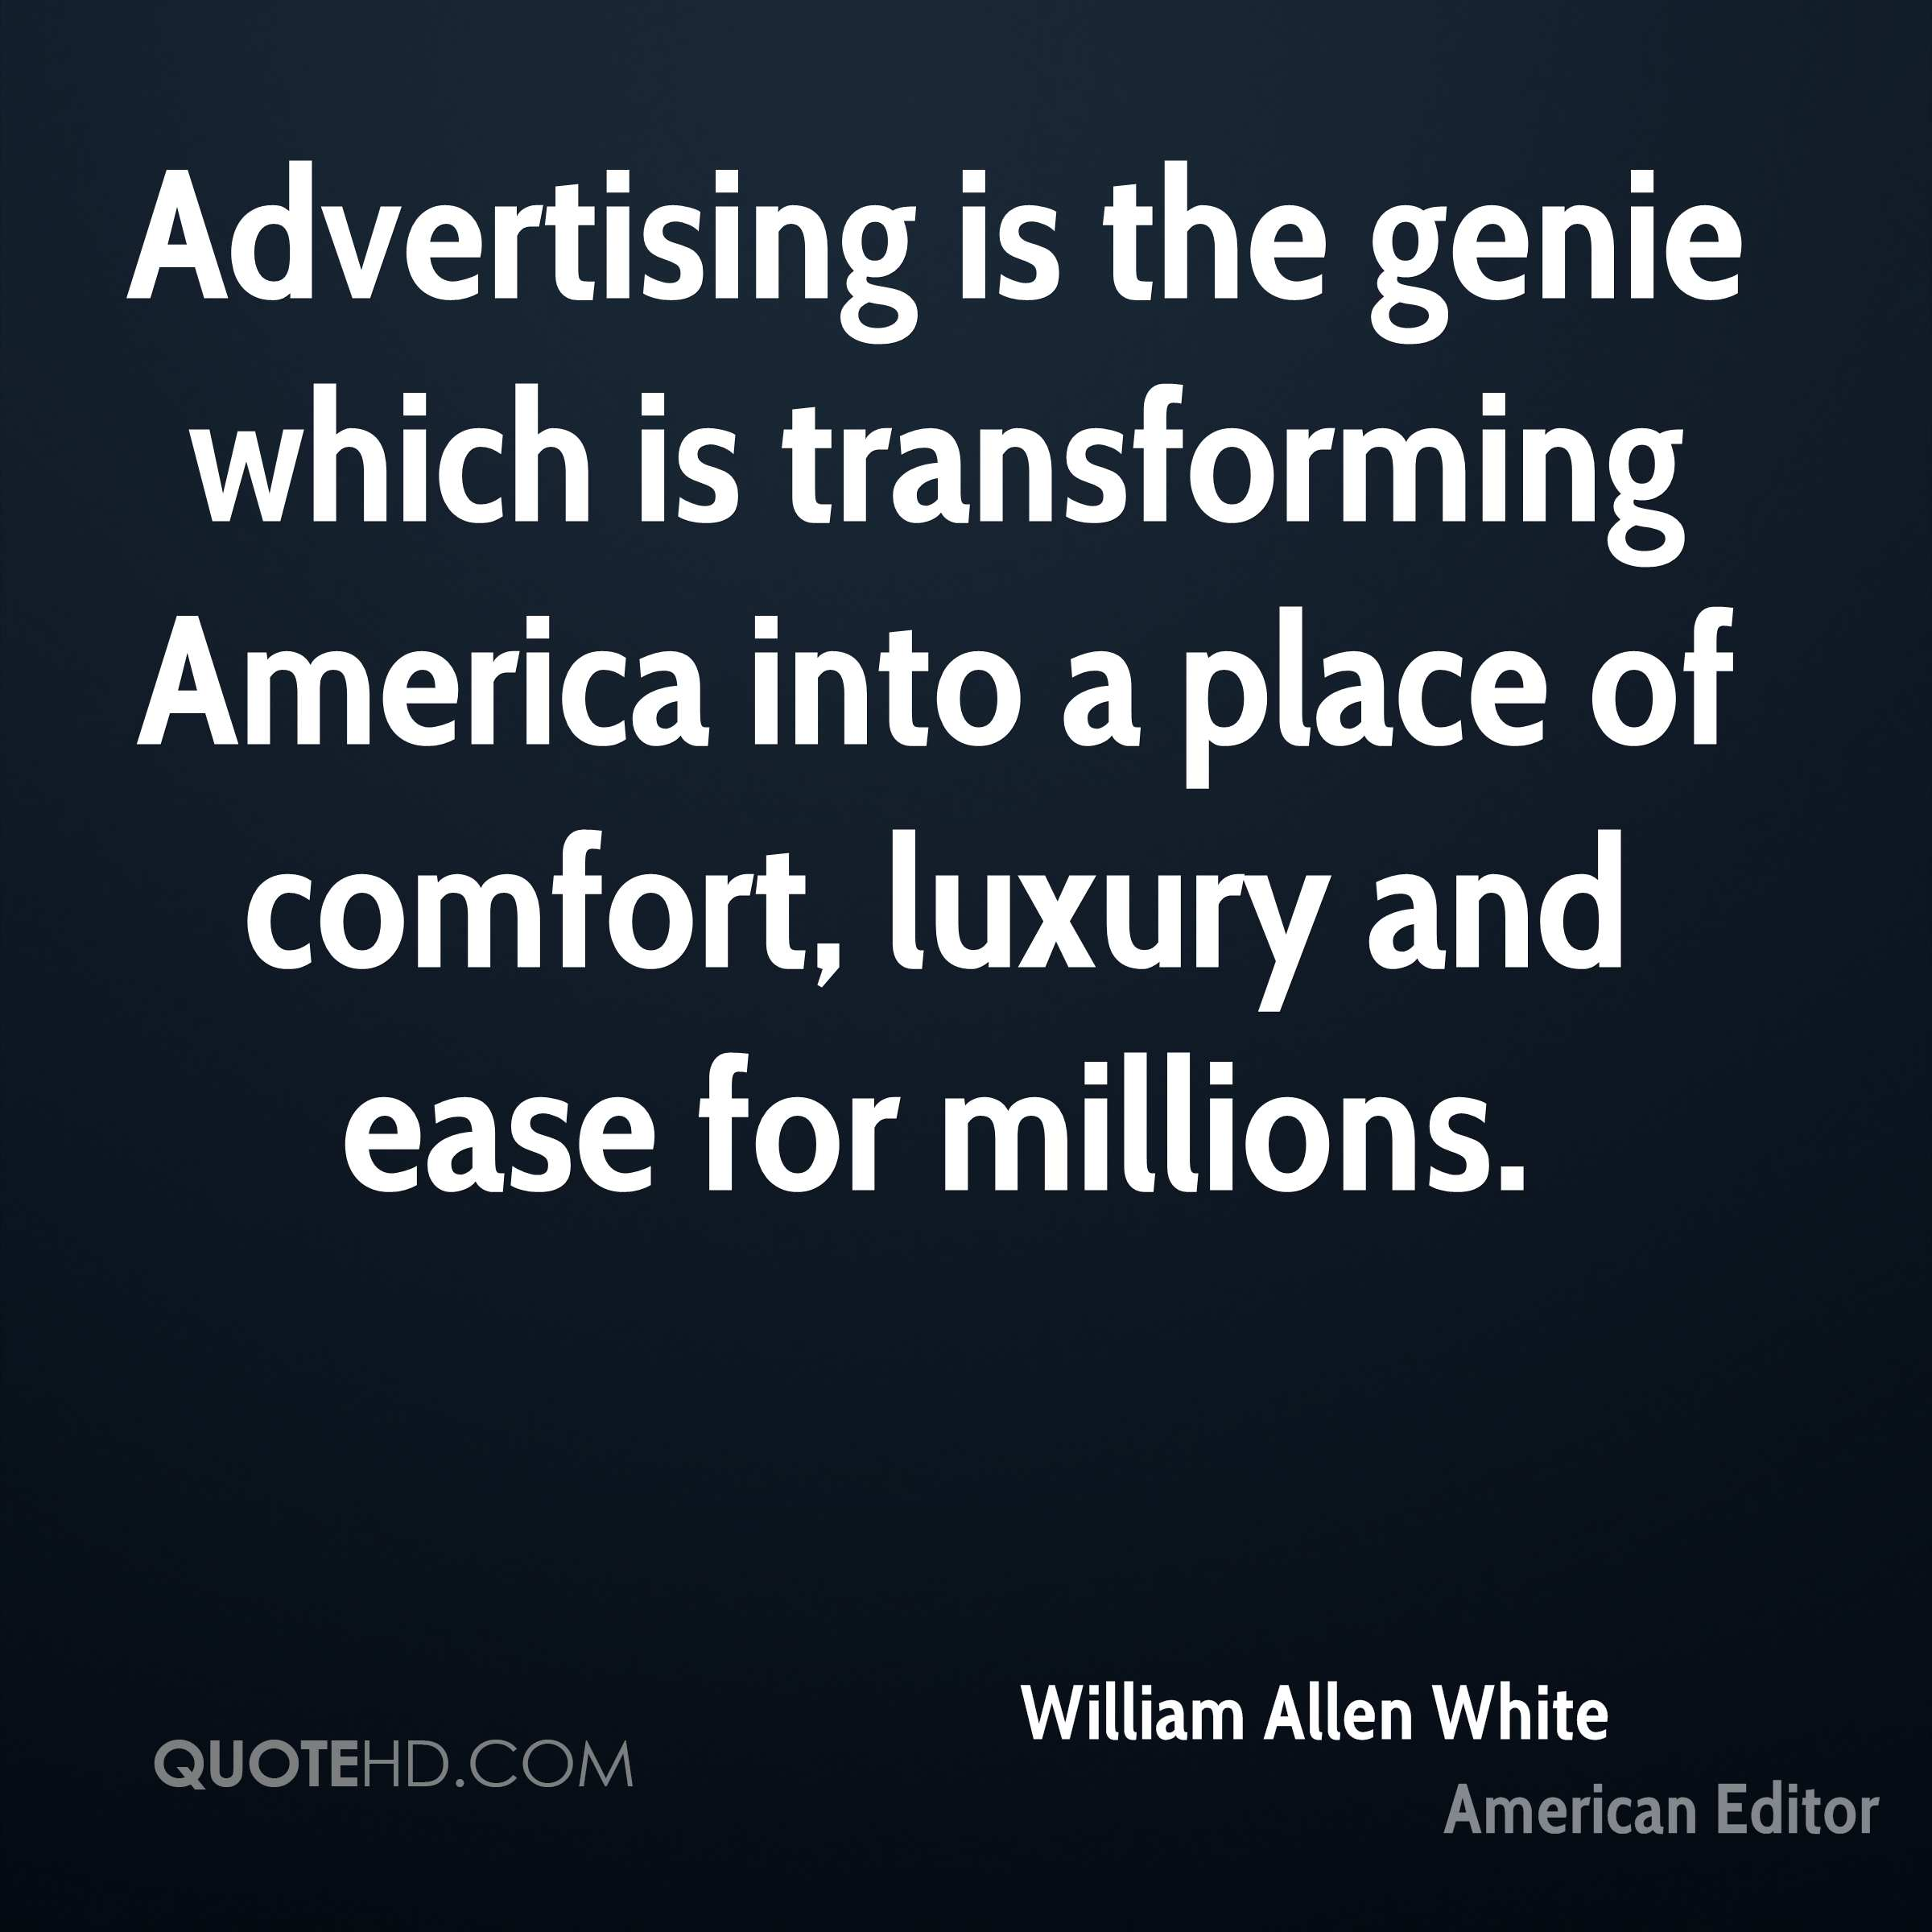 Advertising is the genie which is transforming America into a place of comfort, luxury and ease for millions.